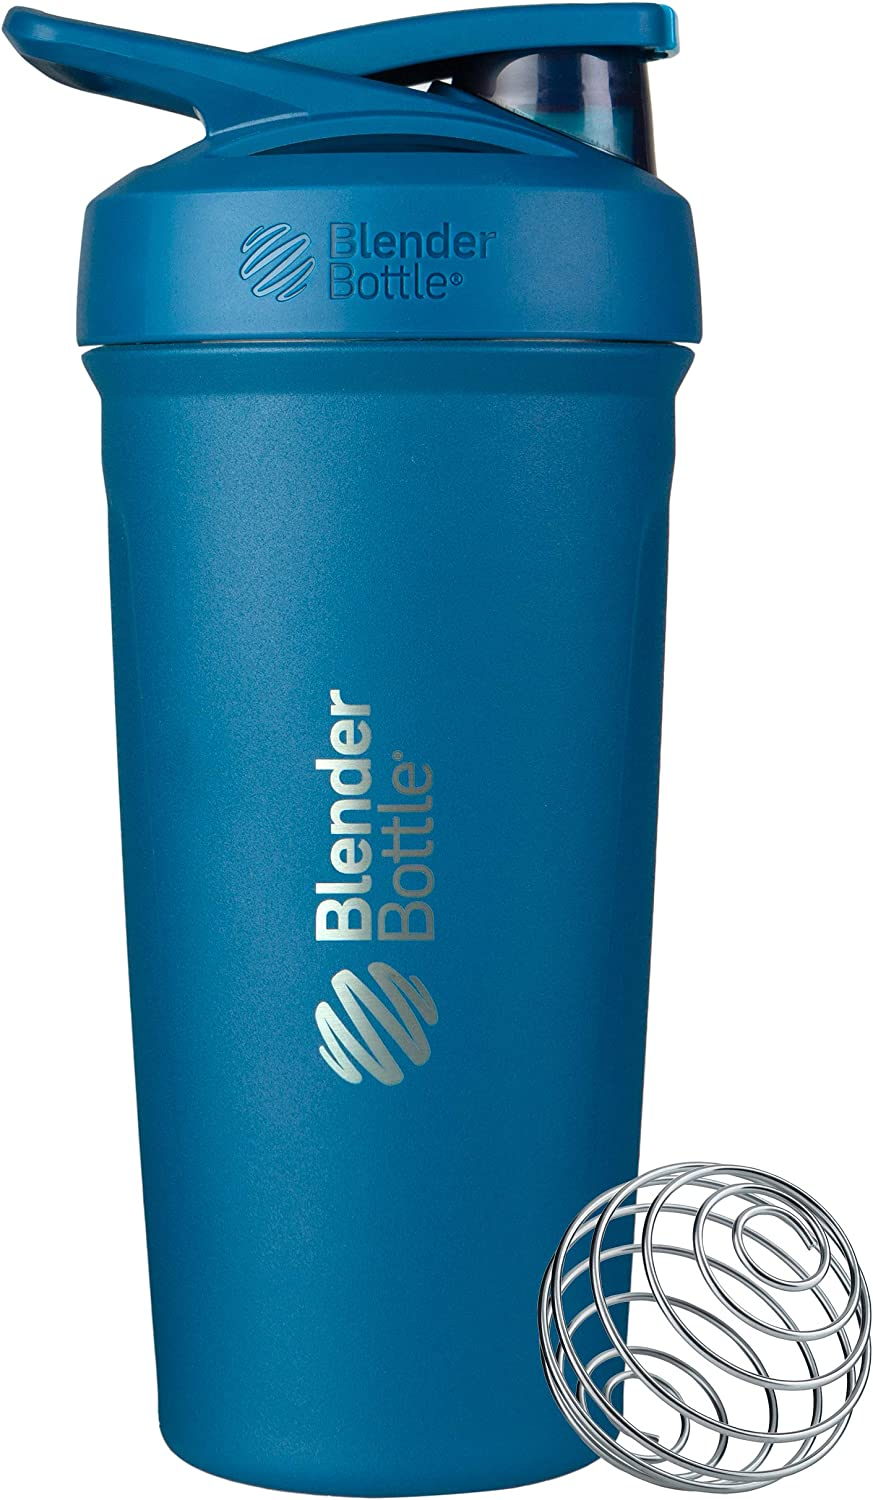 BlenderBottle Strada Insulated Shaker Bottle with Locking Lid, 24-Ounce, Blue